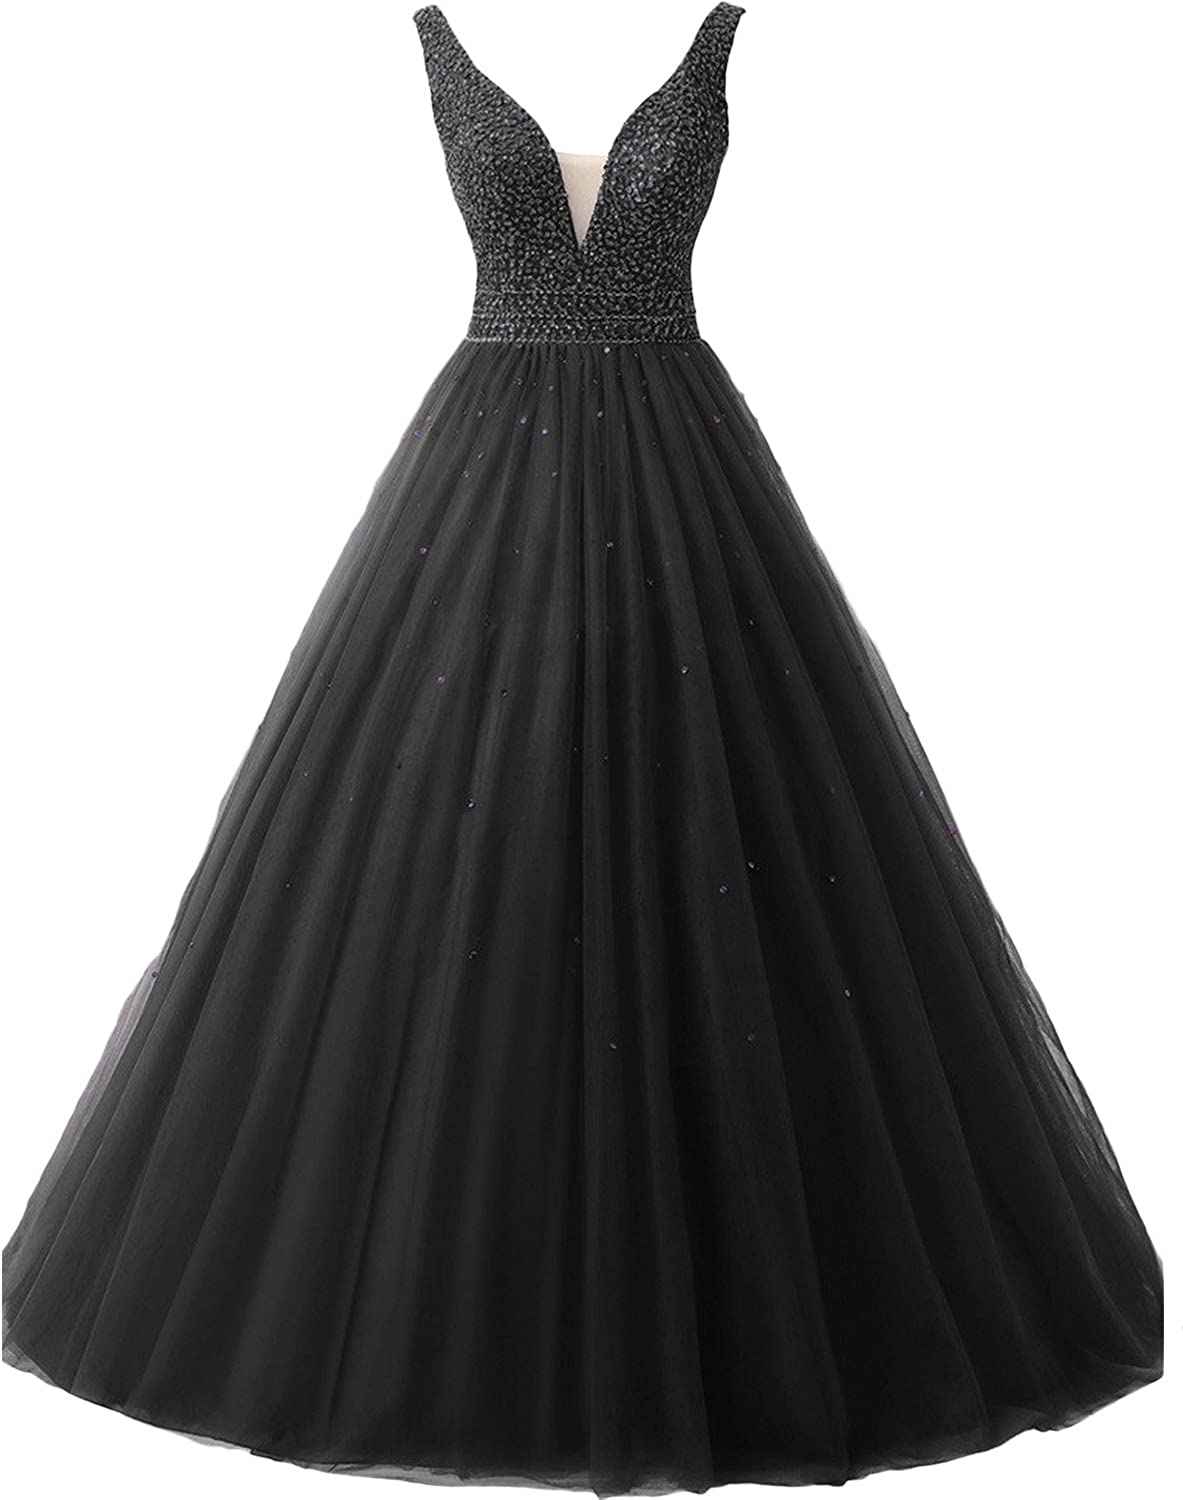 DINGZAN Sequin V Neck Quinceanera Ball Prom Dresses Wedding Gowns